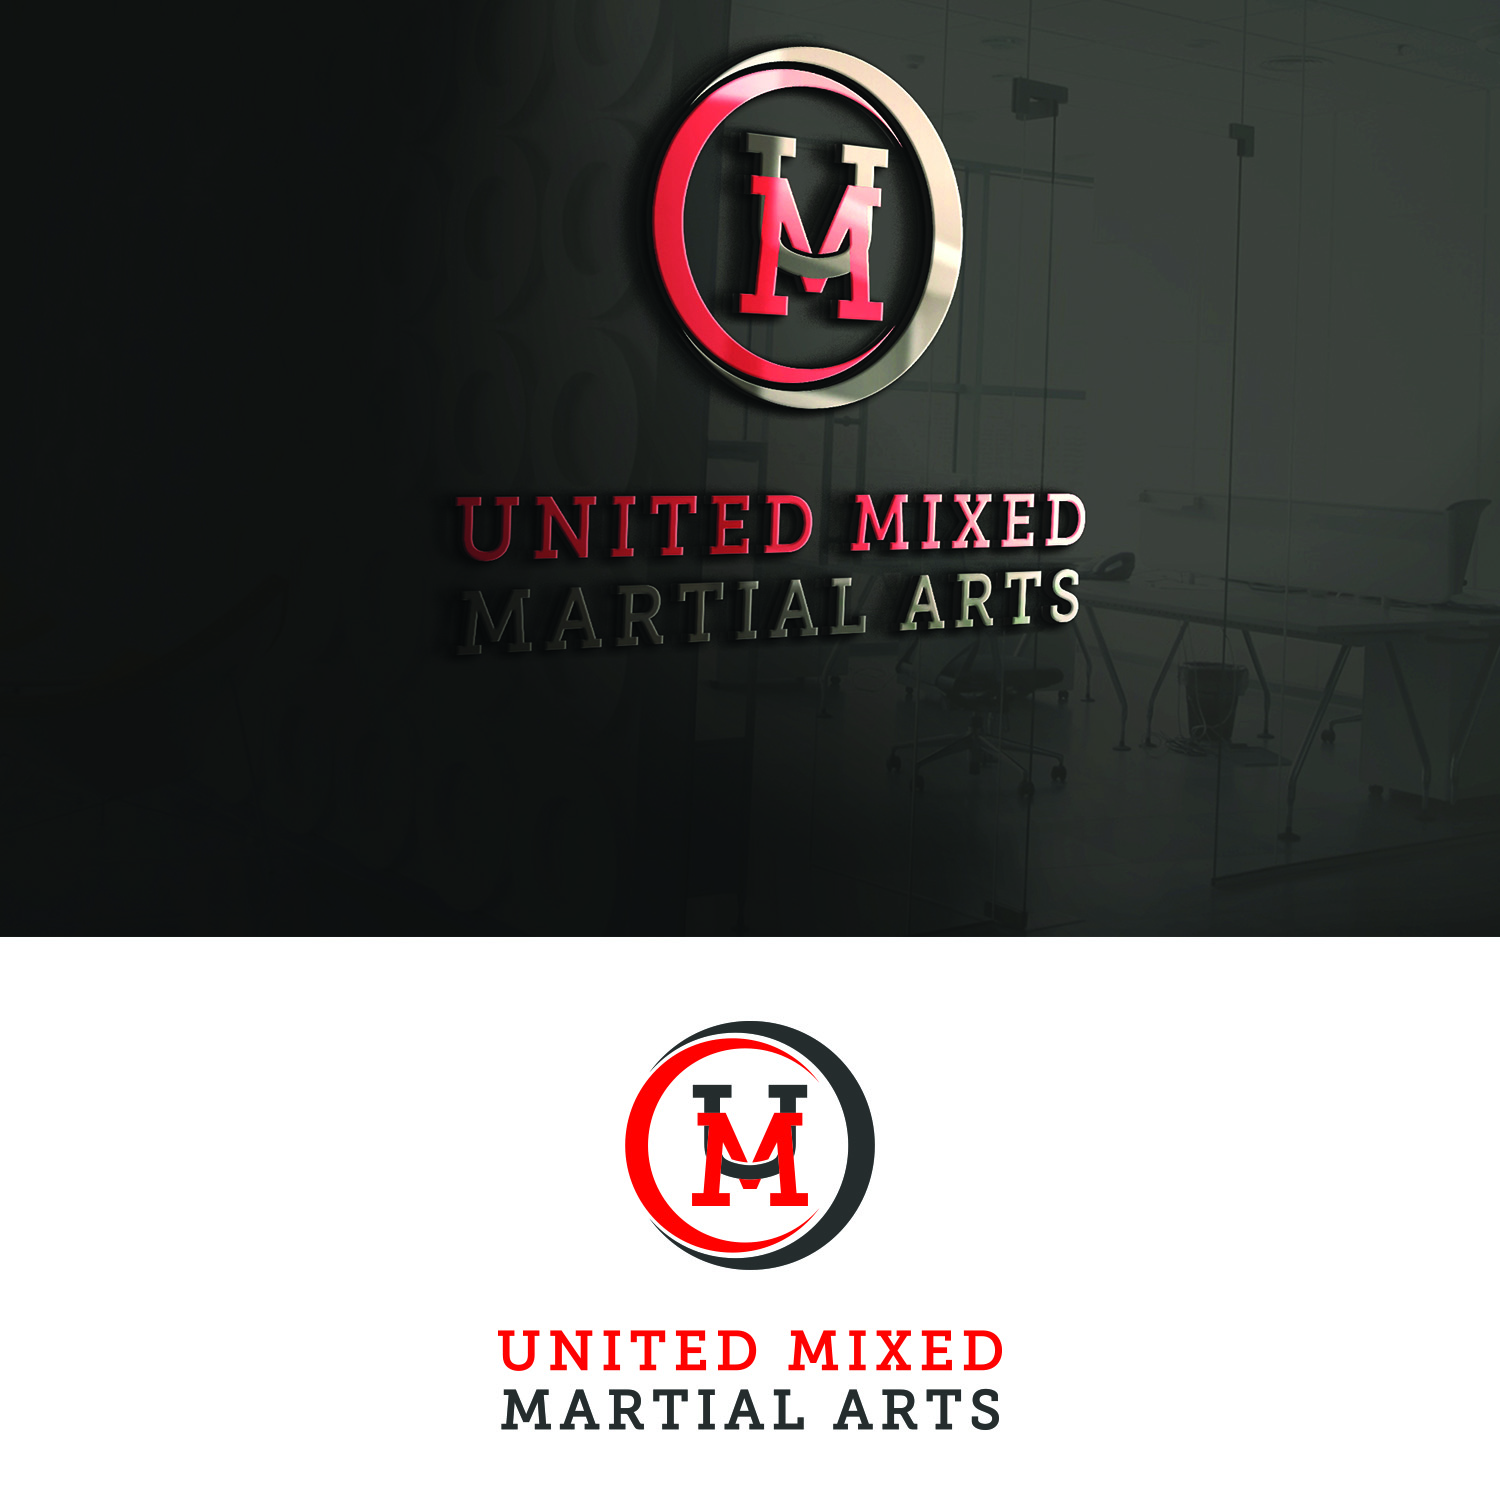 Logo Design by Umair ahmed Iqbal - Entry No. 76 in the Logo Design Contest Artistic Logo Design for United Mixed Martial Arts Ltd..